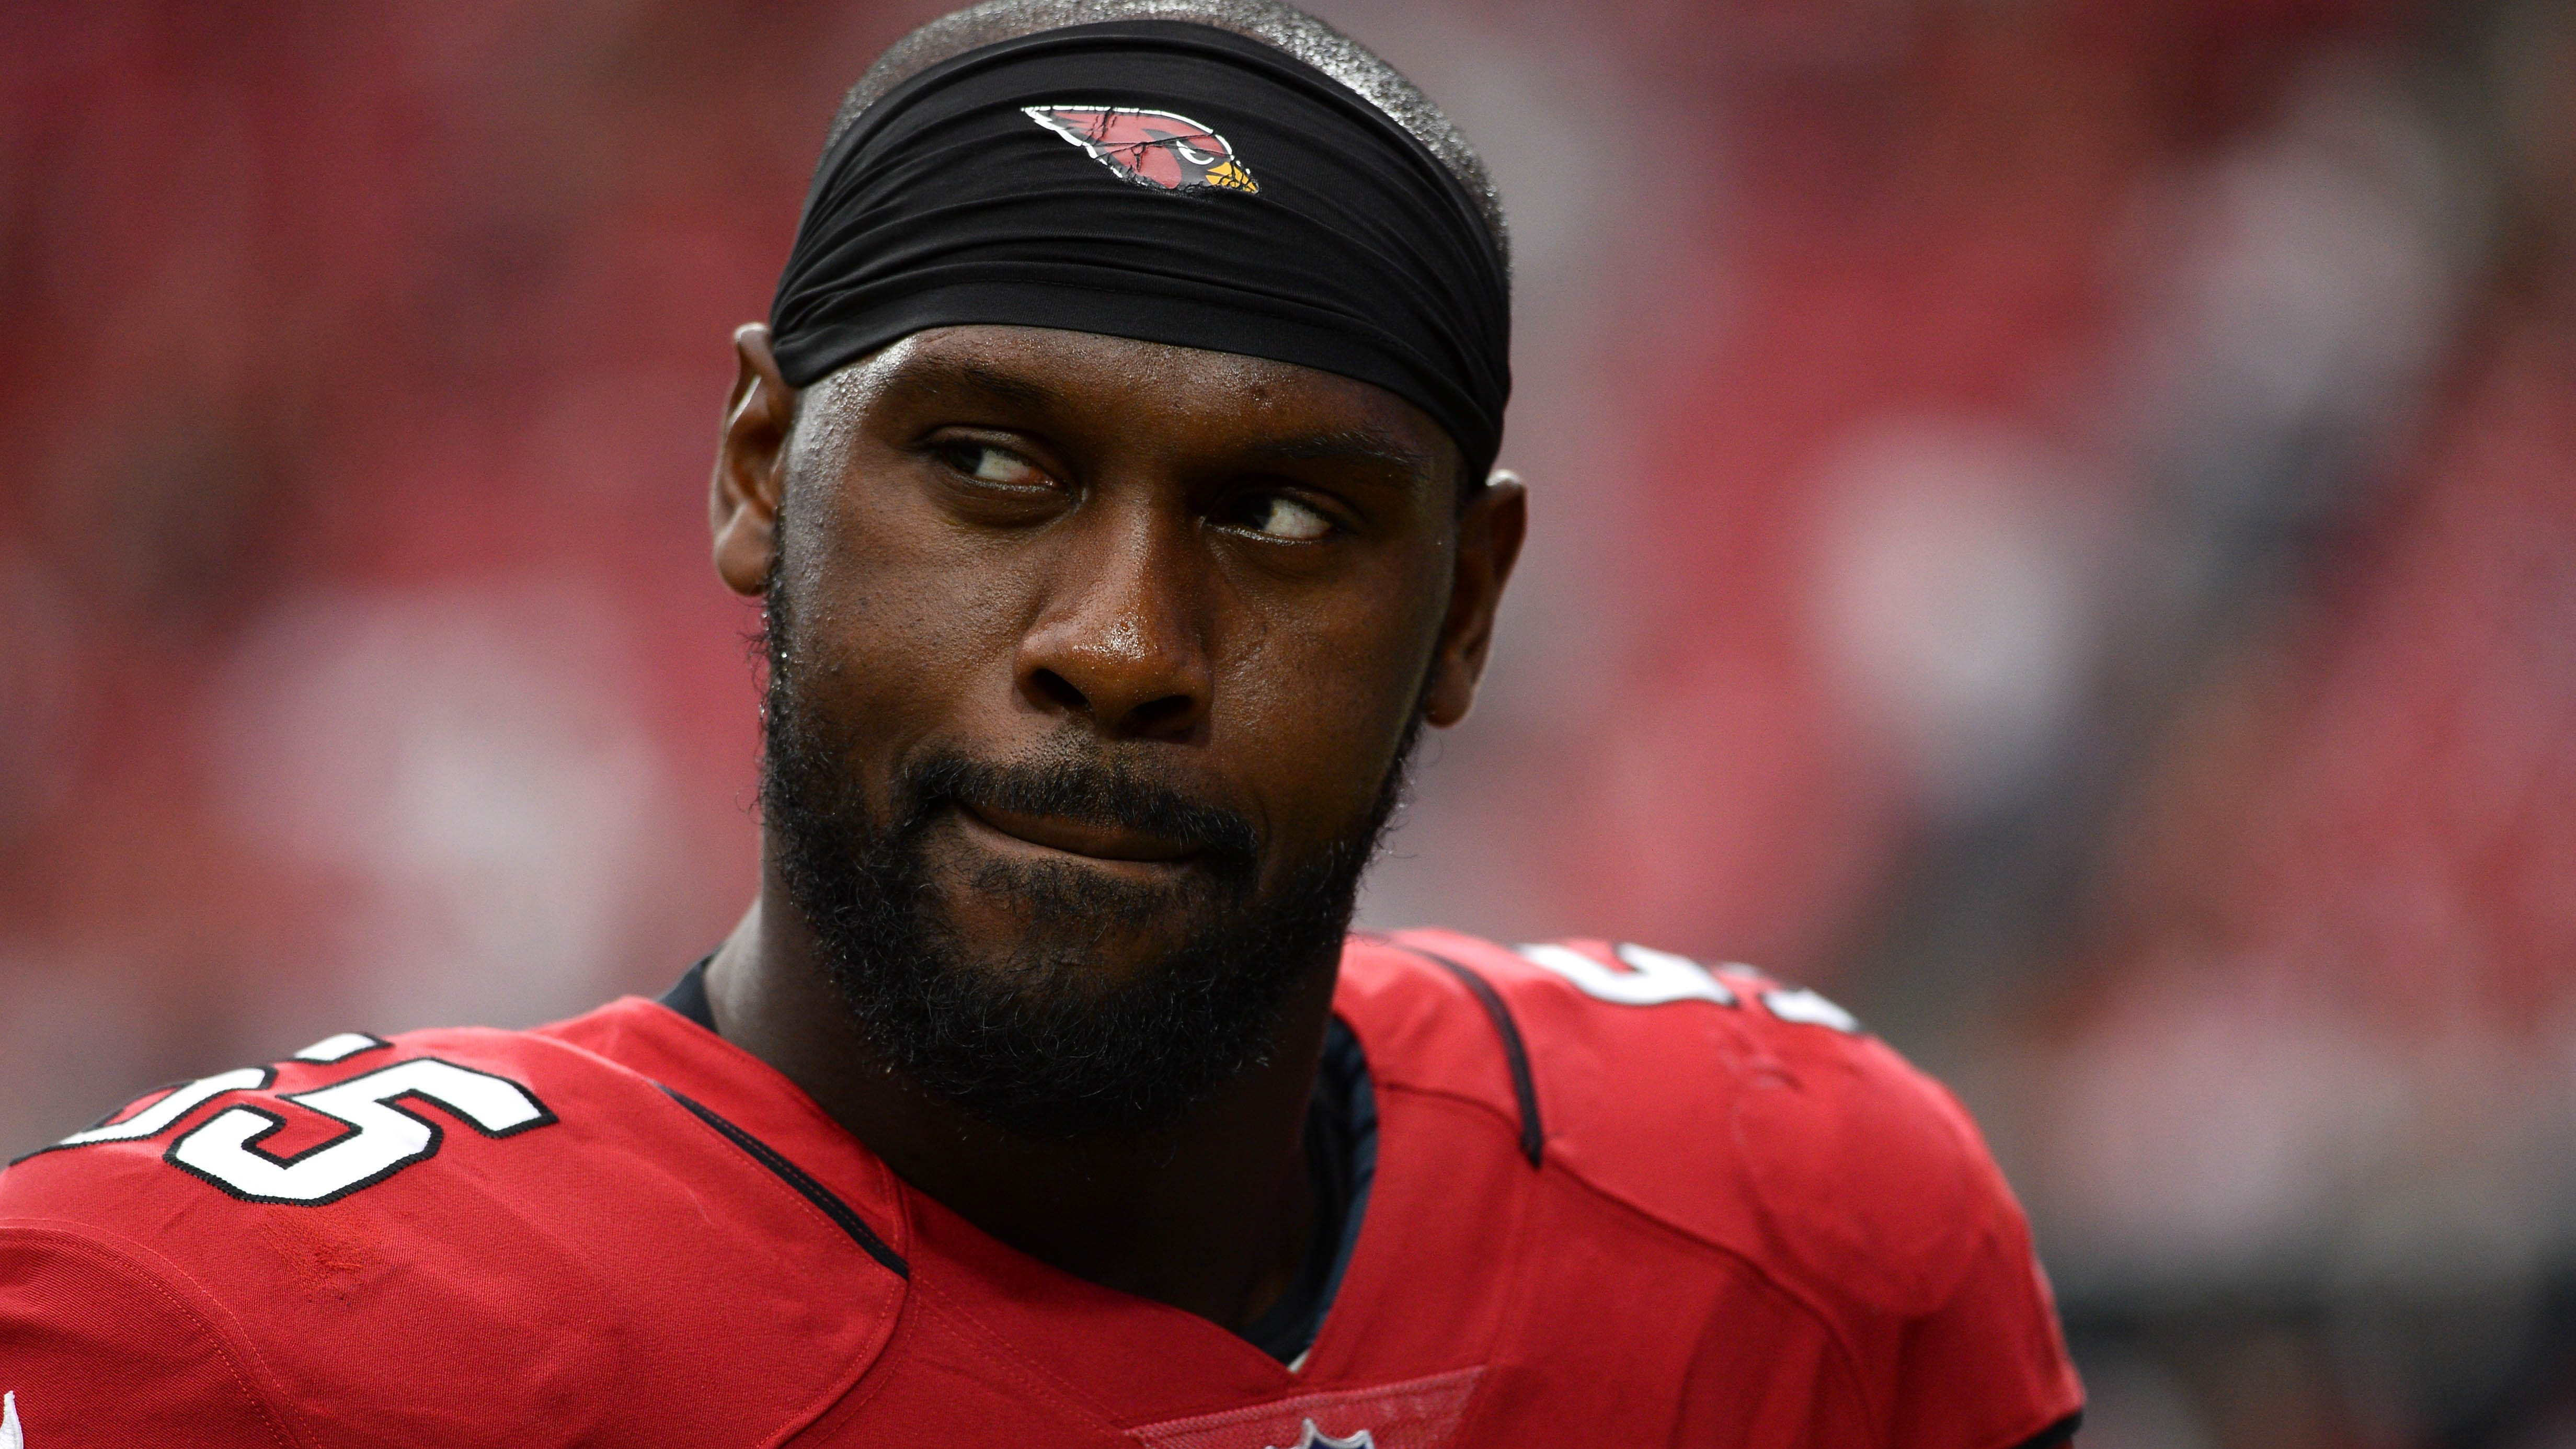 1da65f56-214b-4f08-8ffb-655d38f9a389-chandler_jones